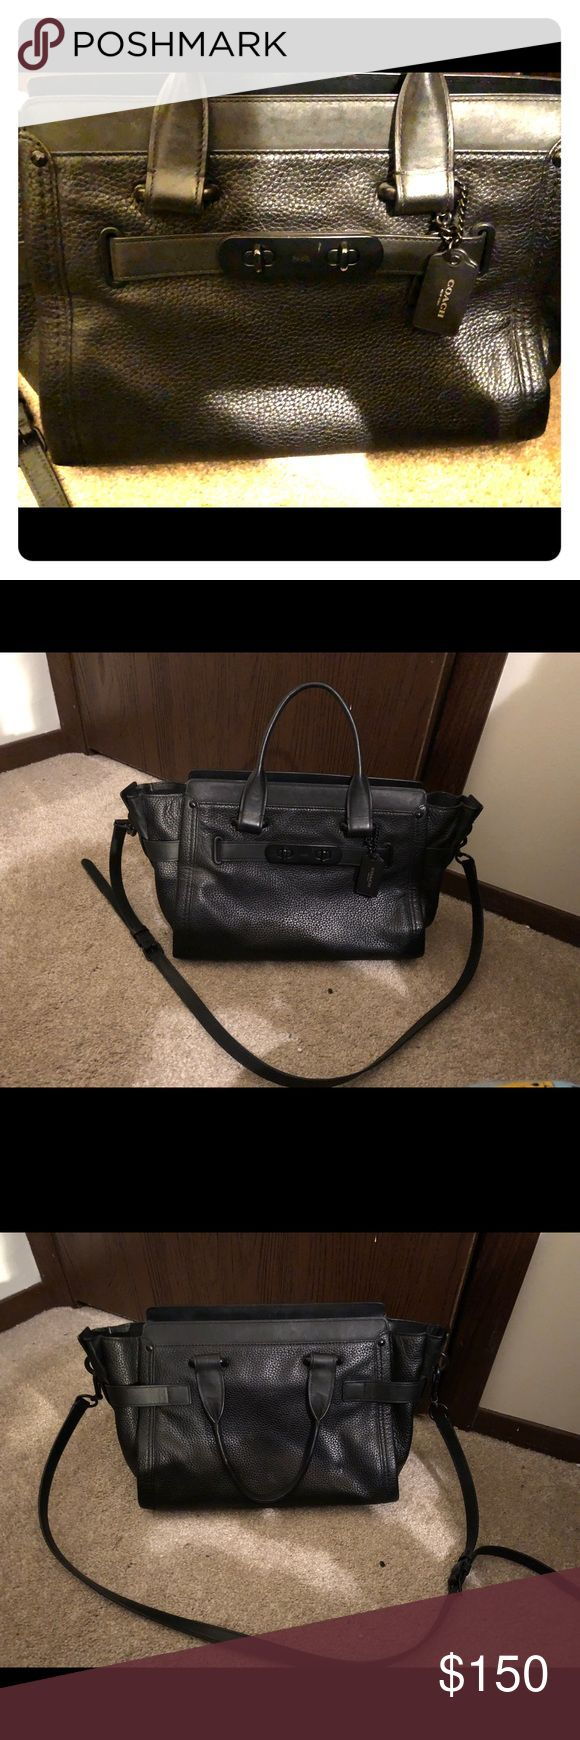 """Coach swagger with black pebble leather Black pebble leather worn only a few times minimally worm. Black on black accents. 10 3/4"""" (L) x 7 3/4"""" (H) x 5 3/4 (W). Coach Bags Crossbody Bags"""